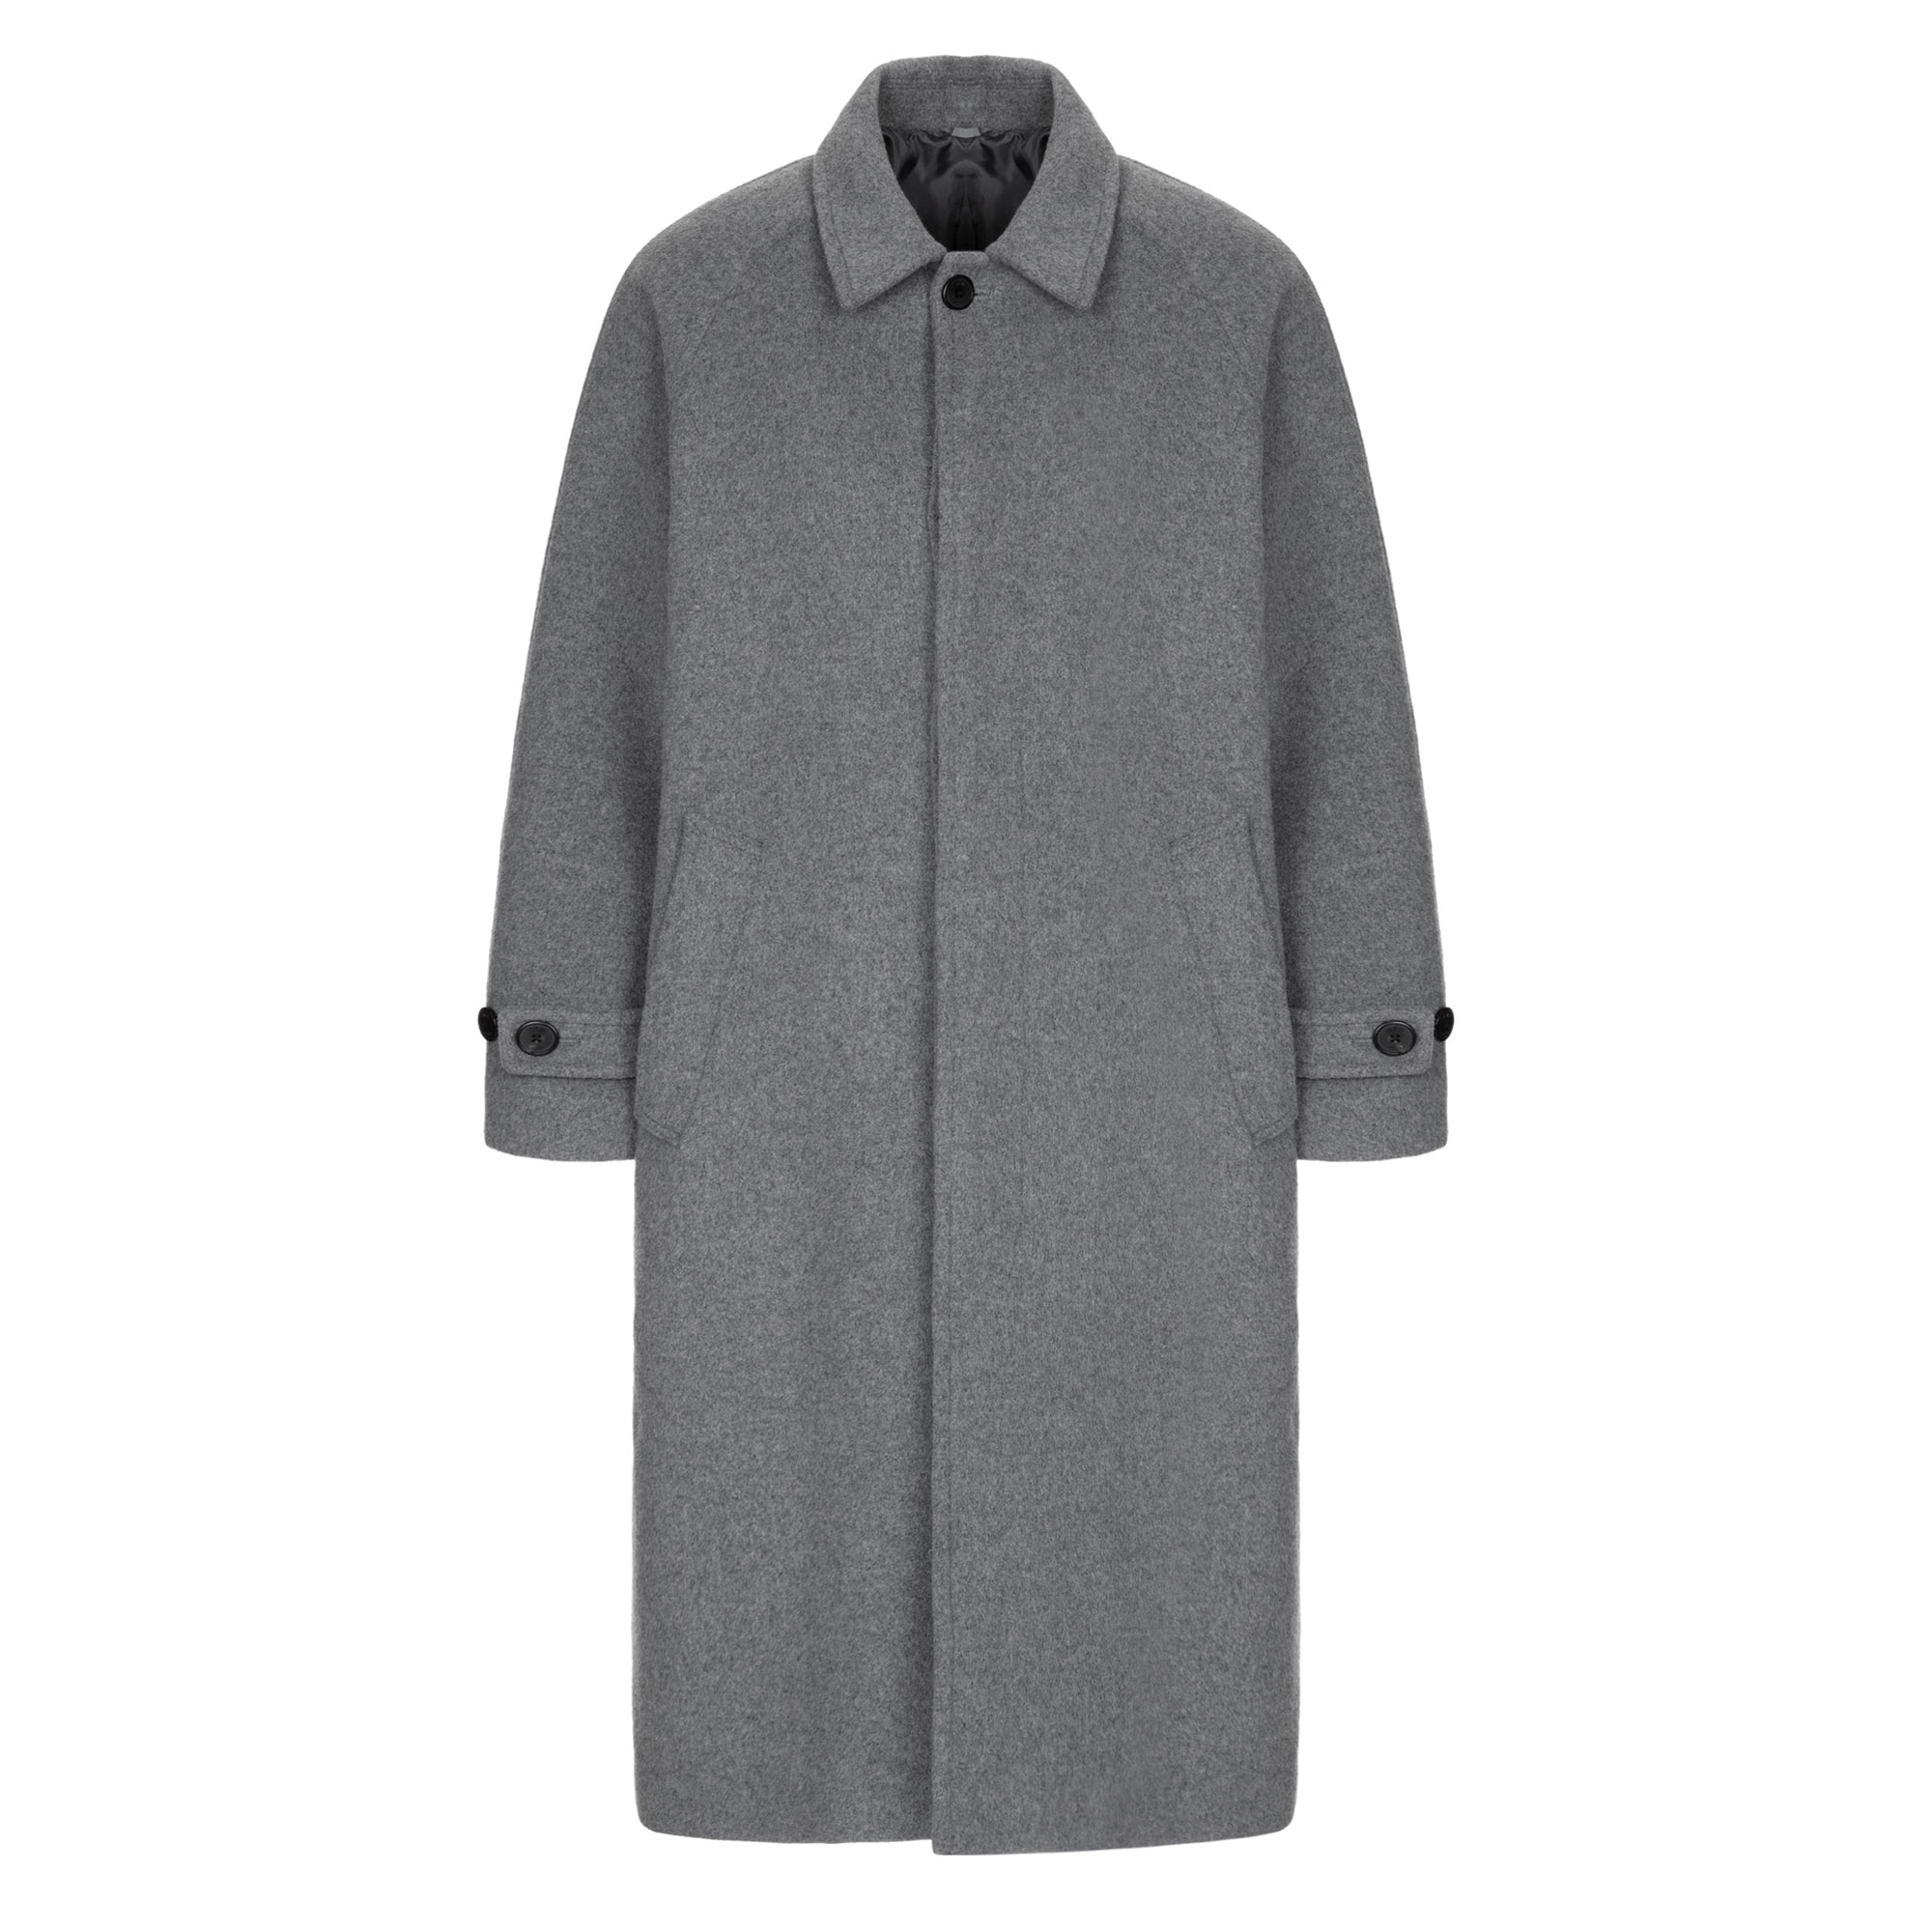 wool balmacaan coat / melange gray